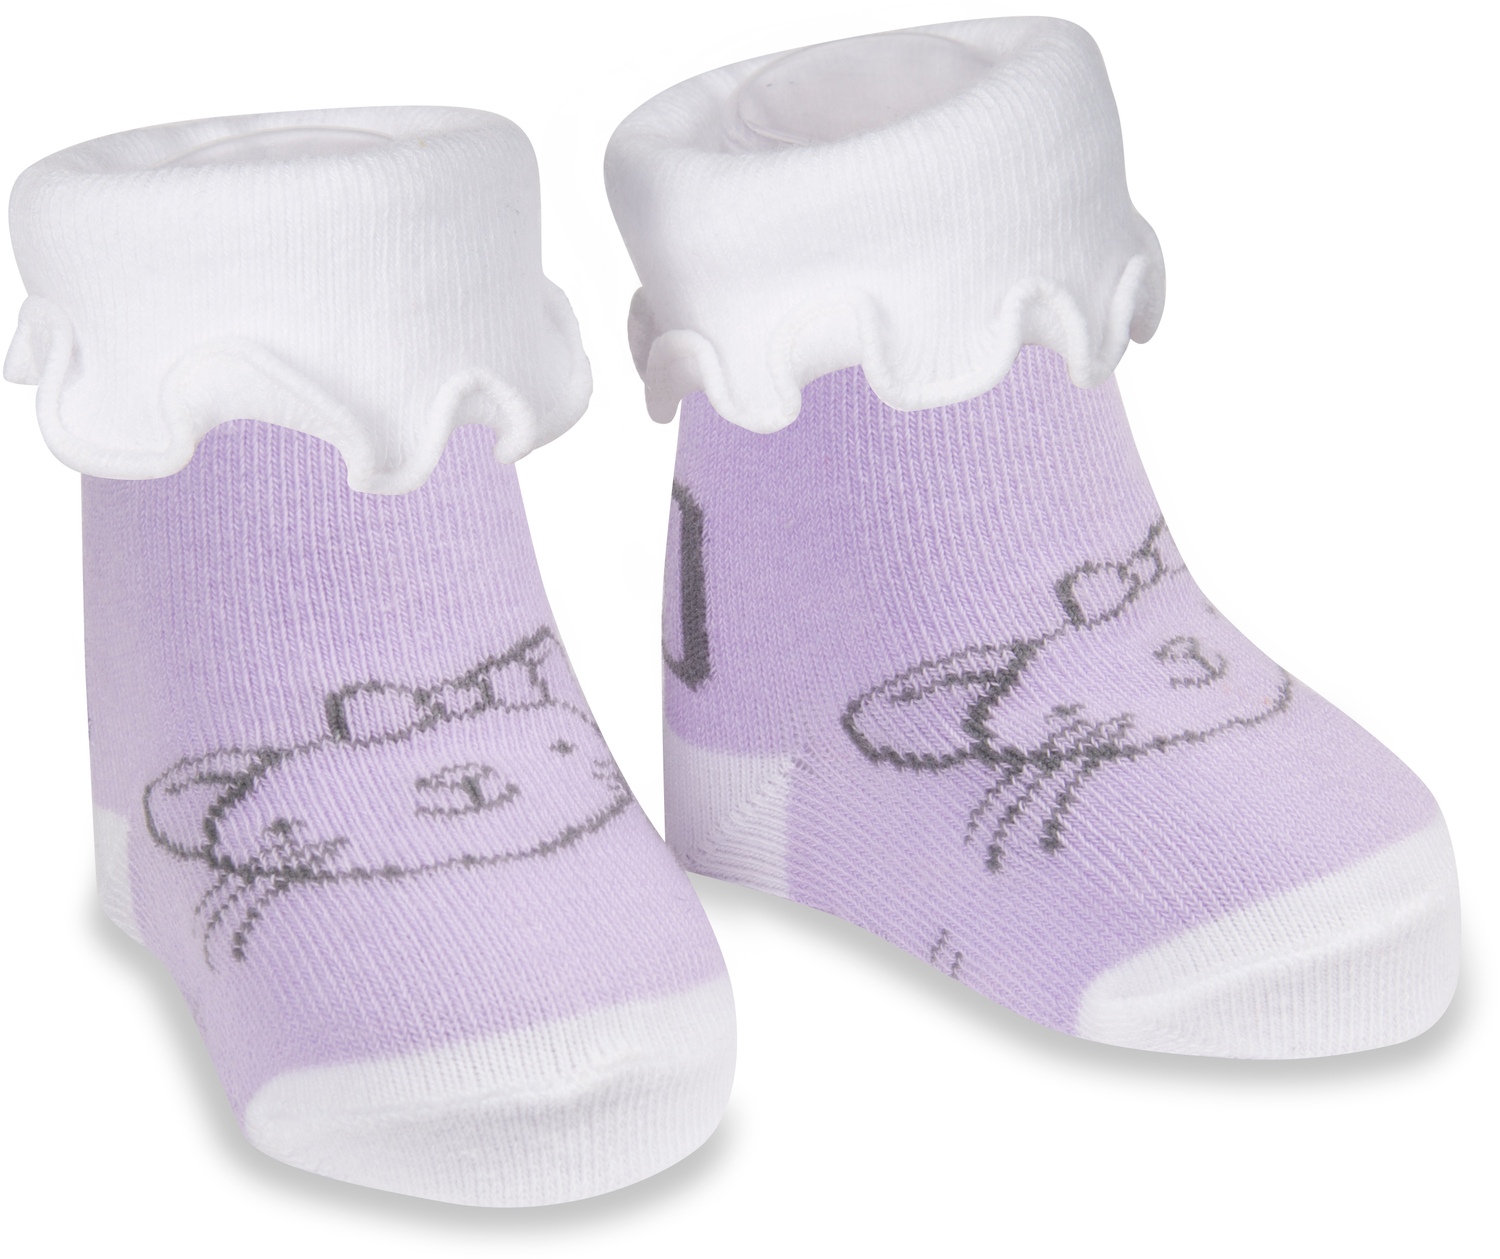 Soft Lavender Kitty by Izzy & Owie - Soft Lavender Kitty - 0-3 Months Socks